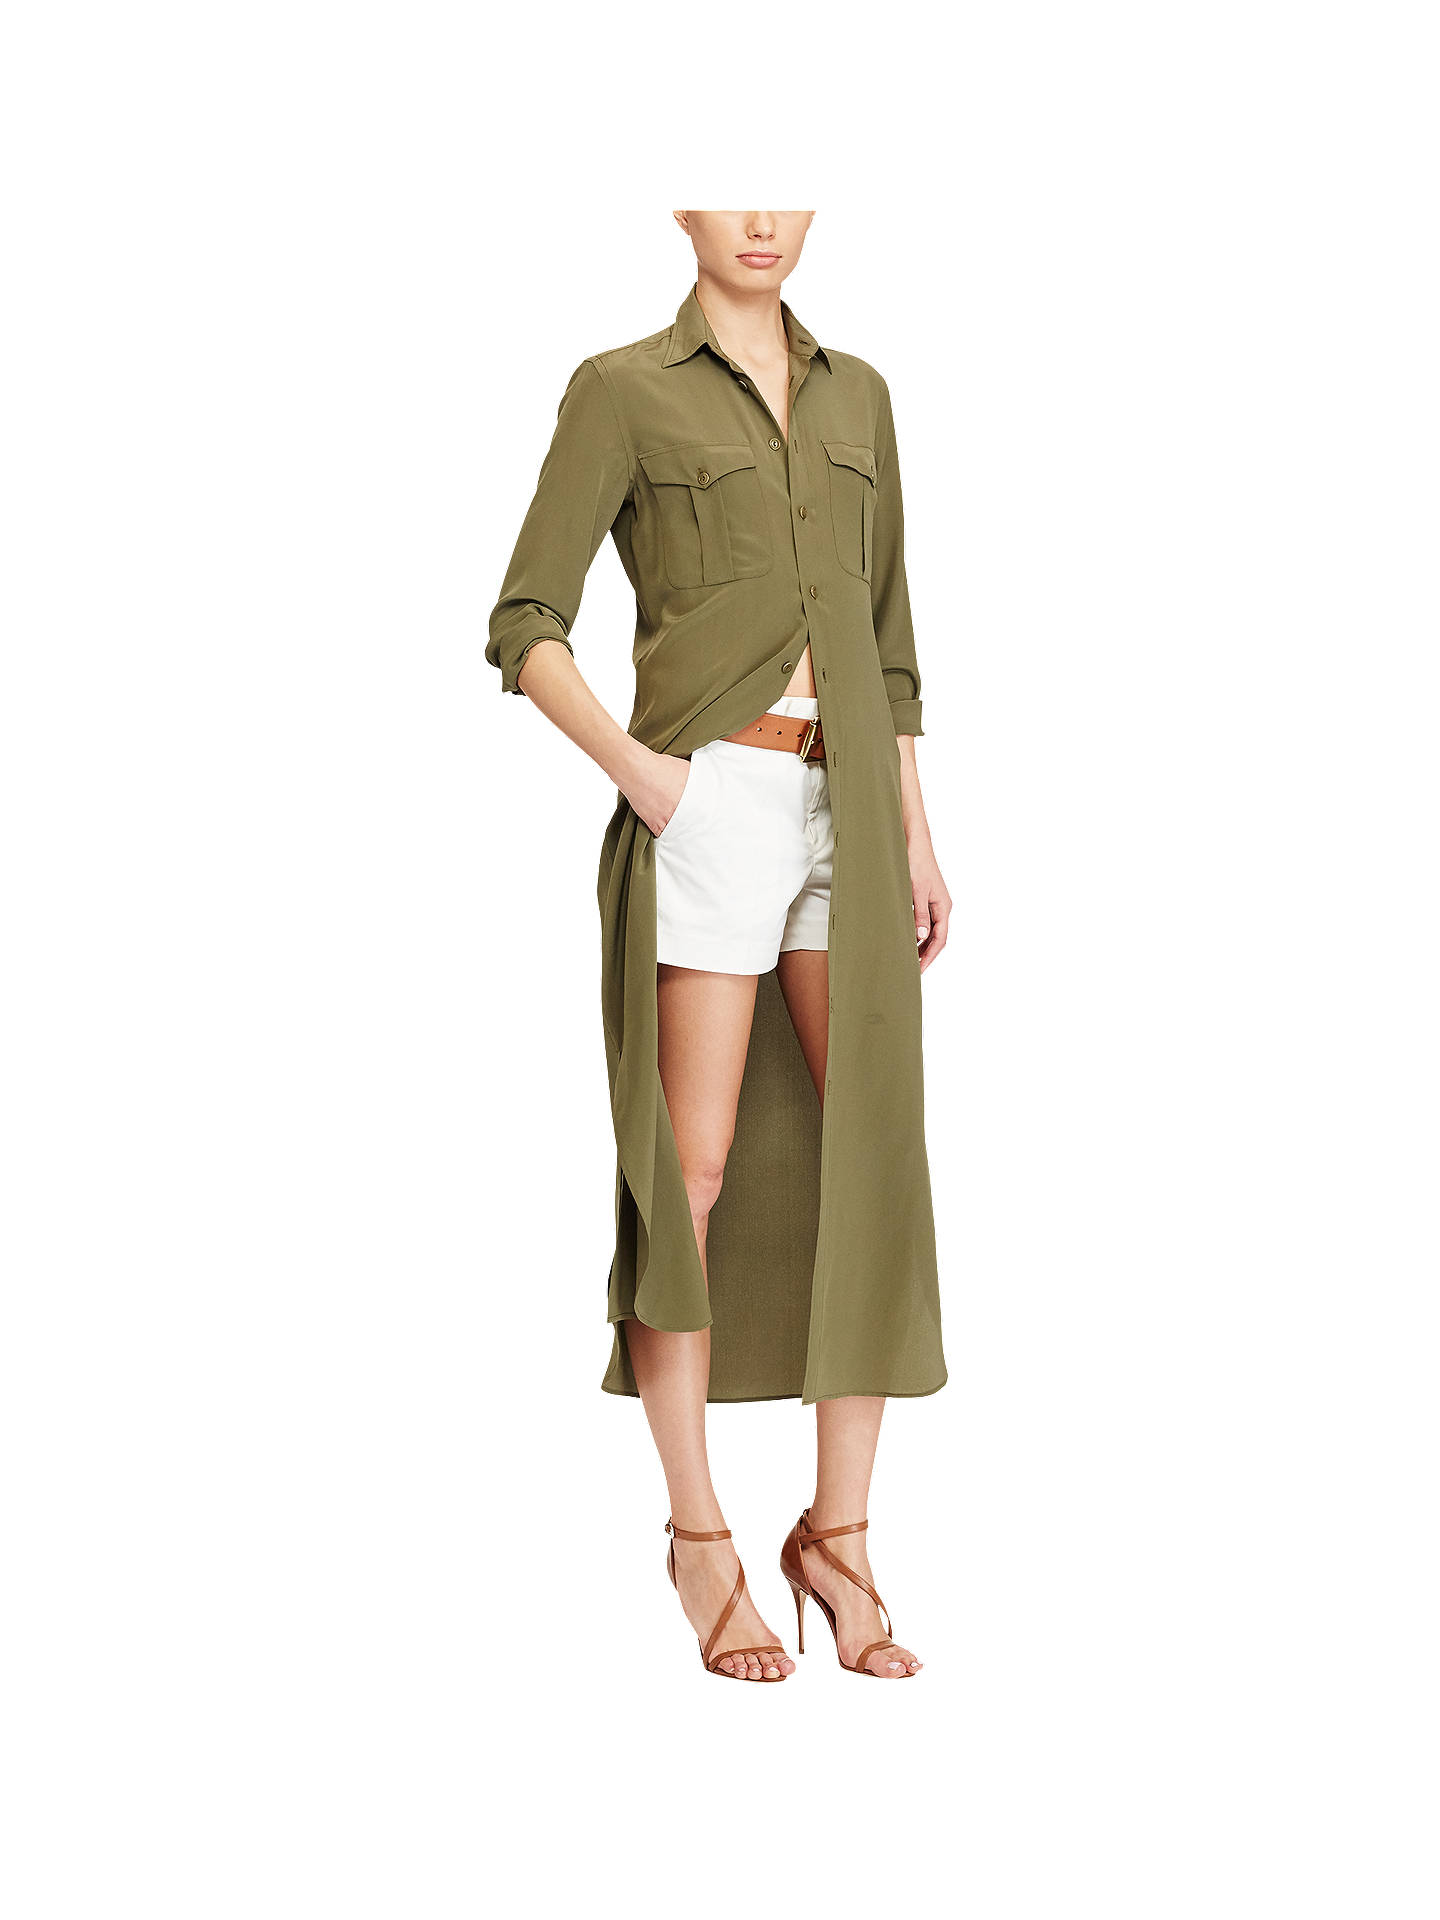 dce2372d8 Buy Polo Ralph Lauren Silk Crepe Shirt Dress, New Olive, 16 Online at  johnlewis ...